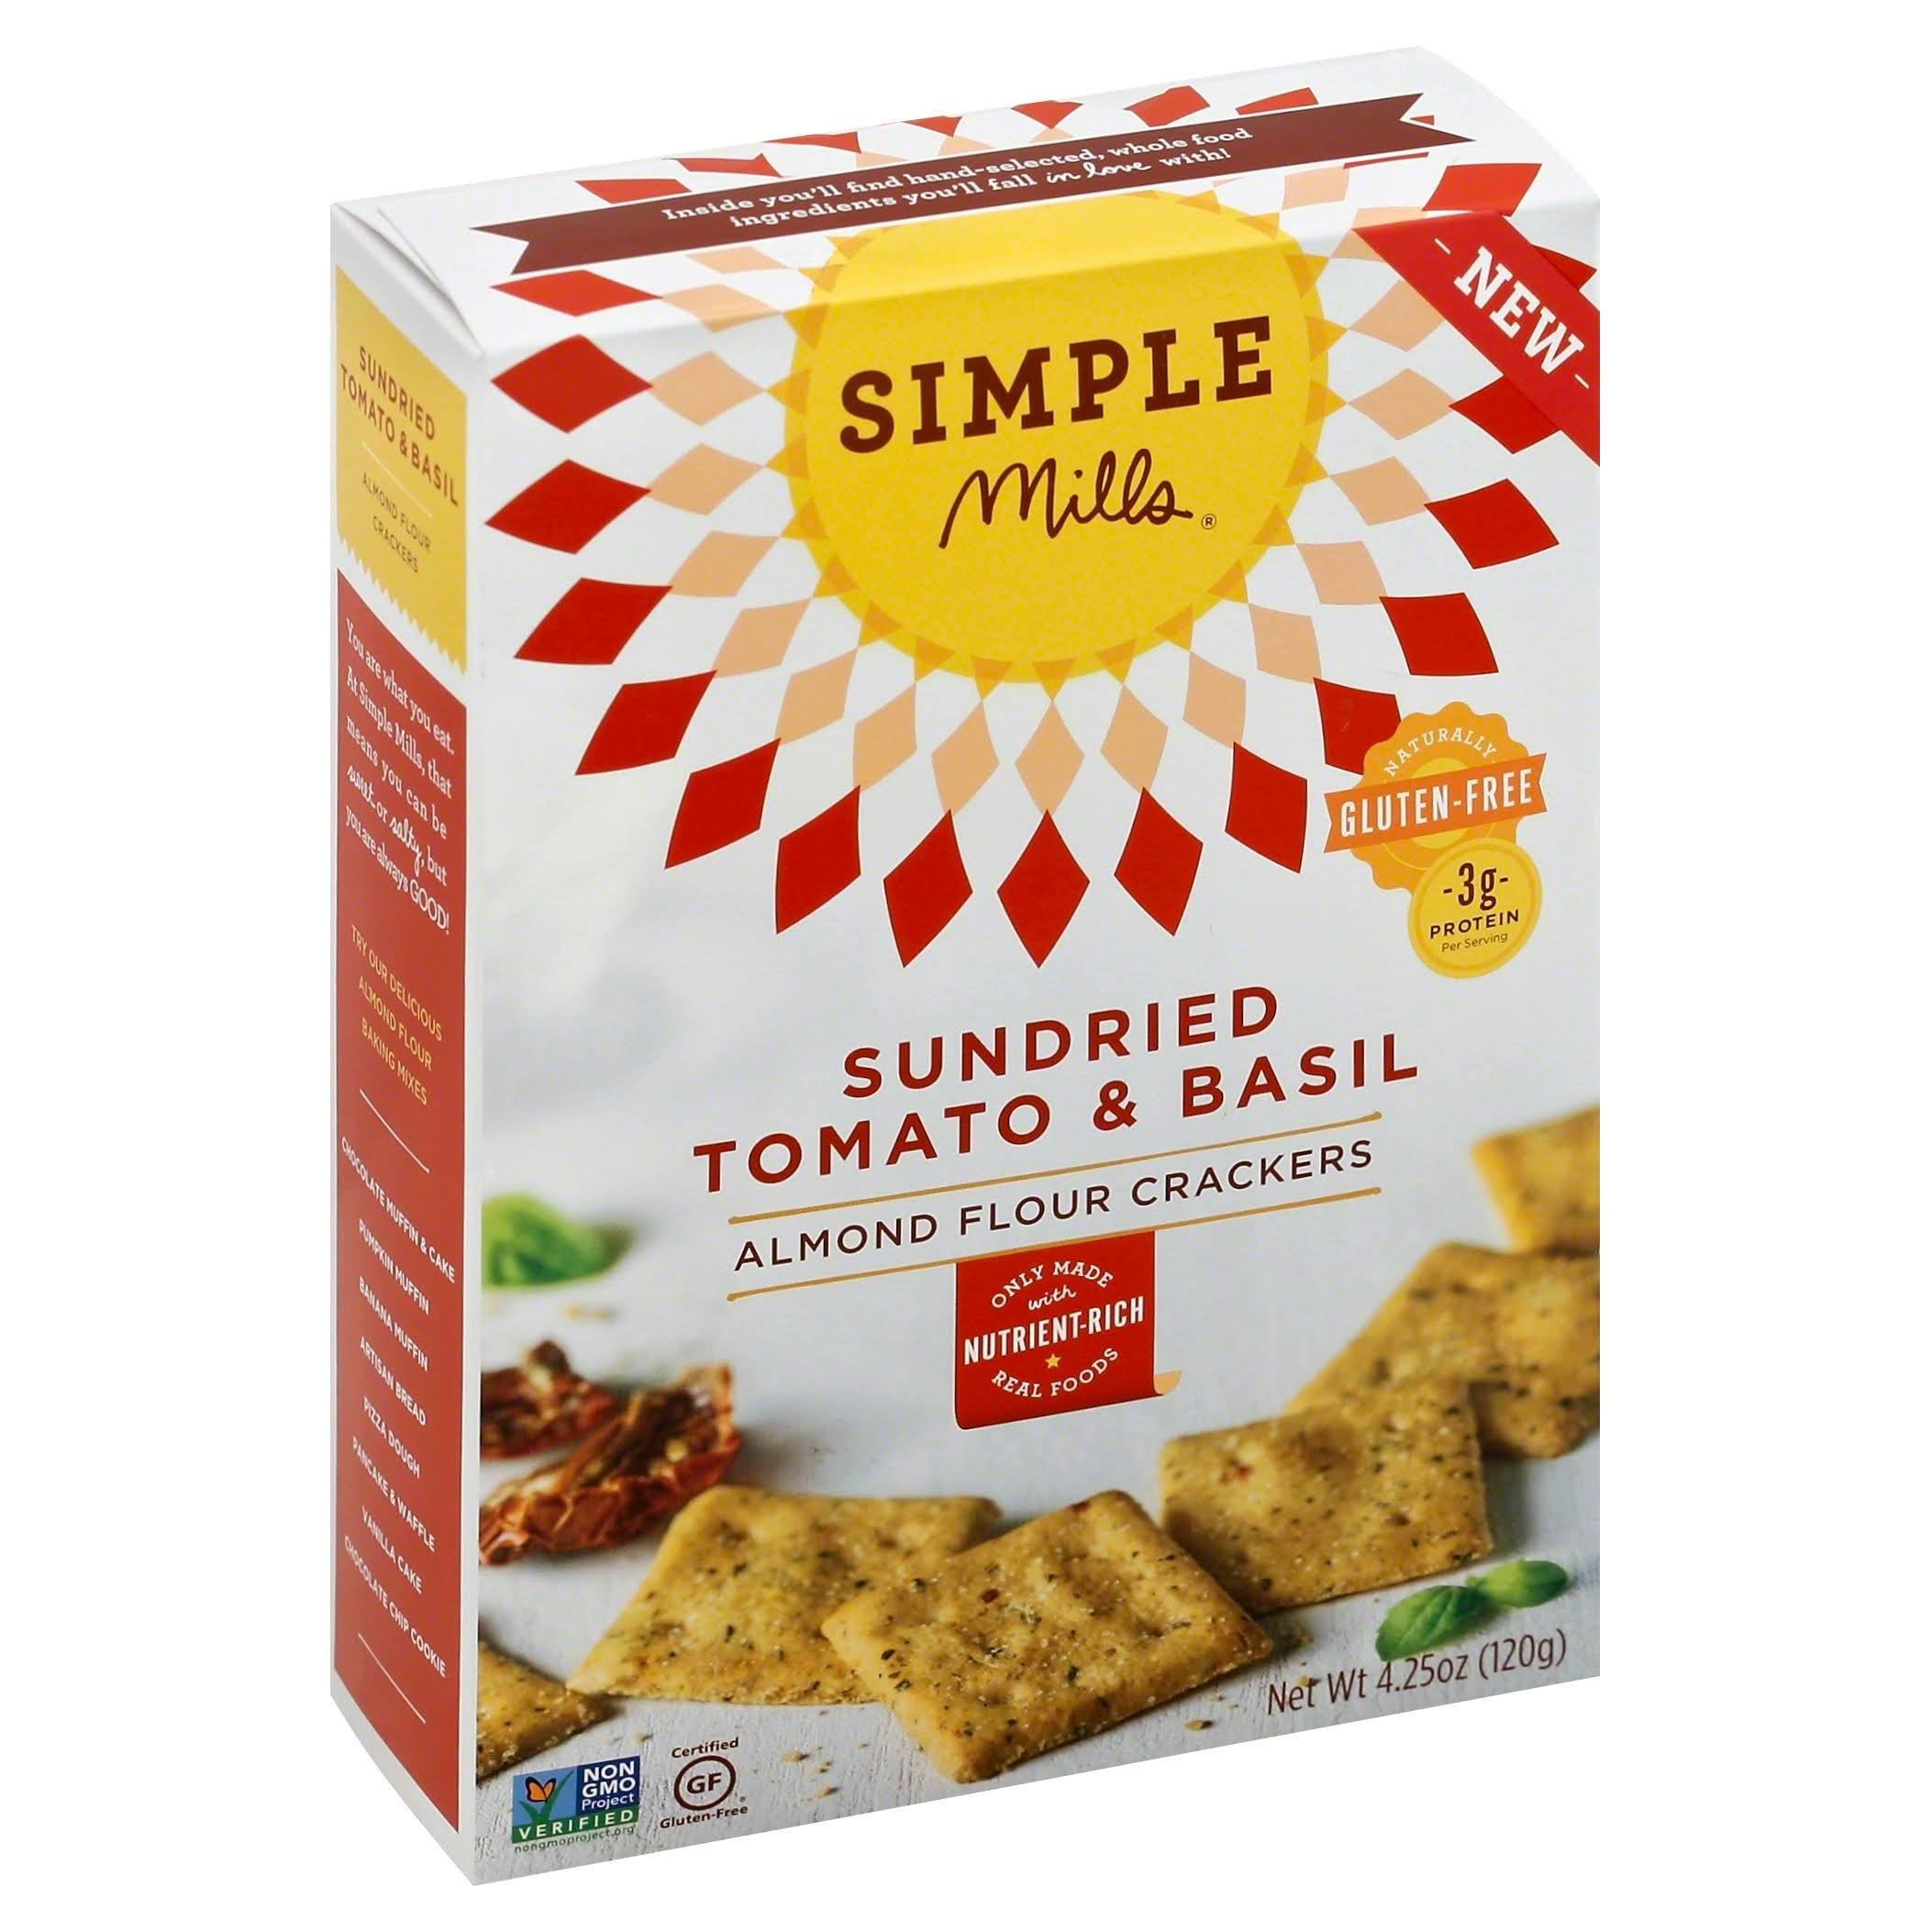 Simple Mills Sundried Tomato & Basil Almond Flour Crackers